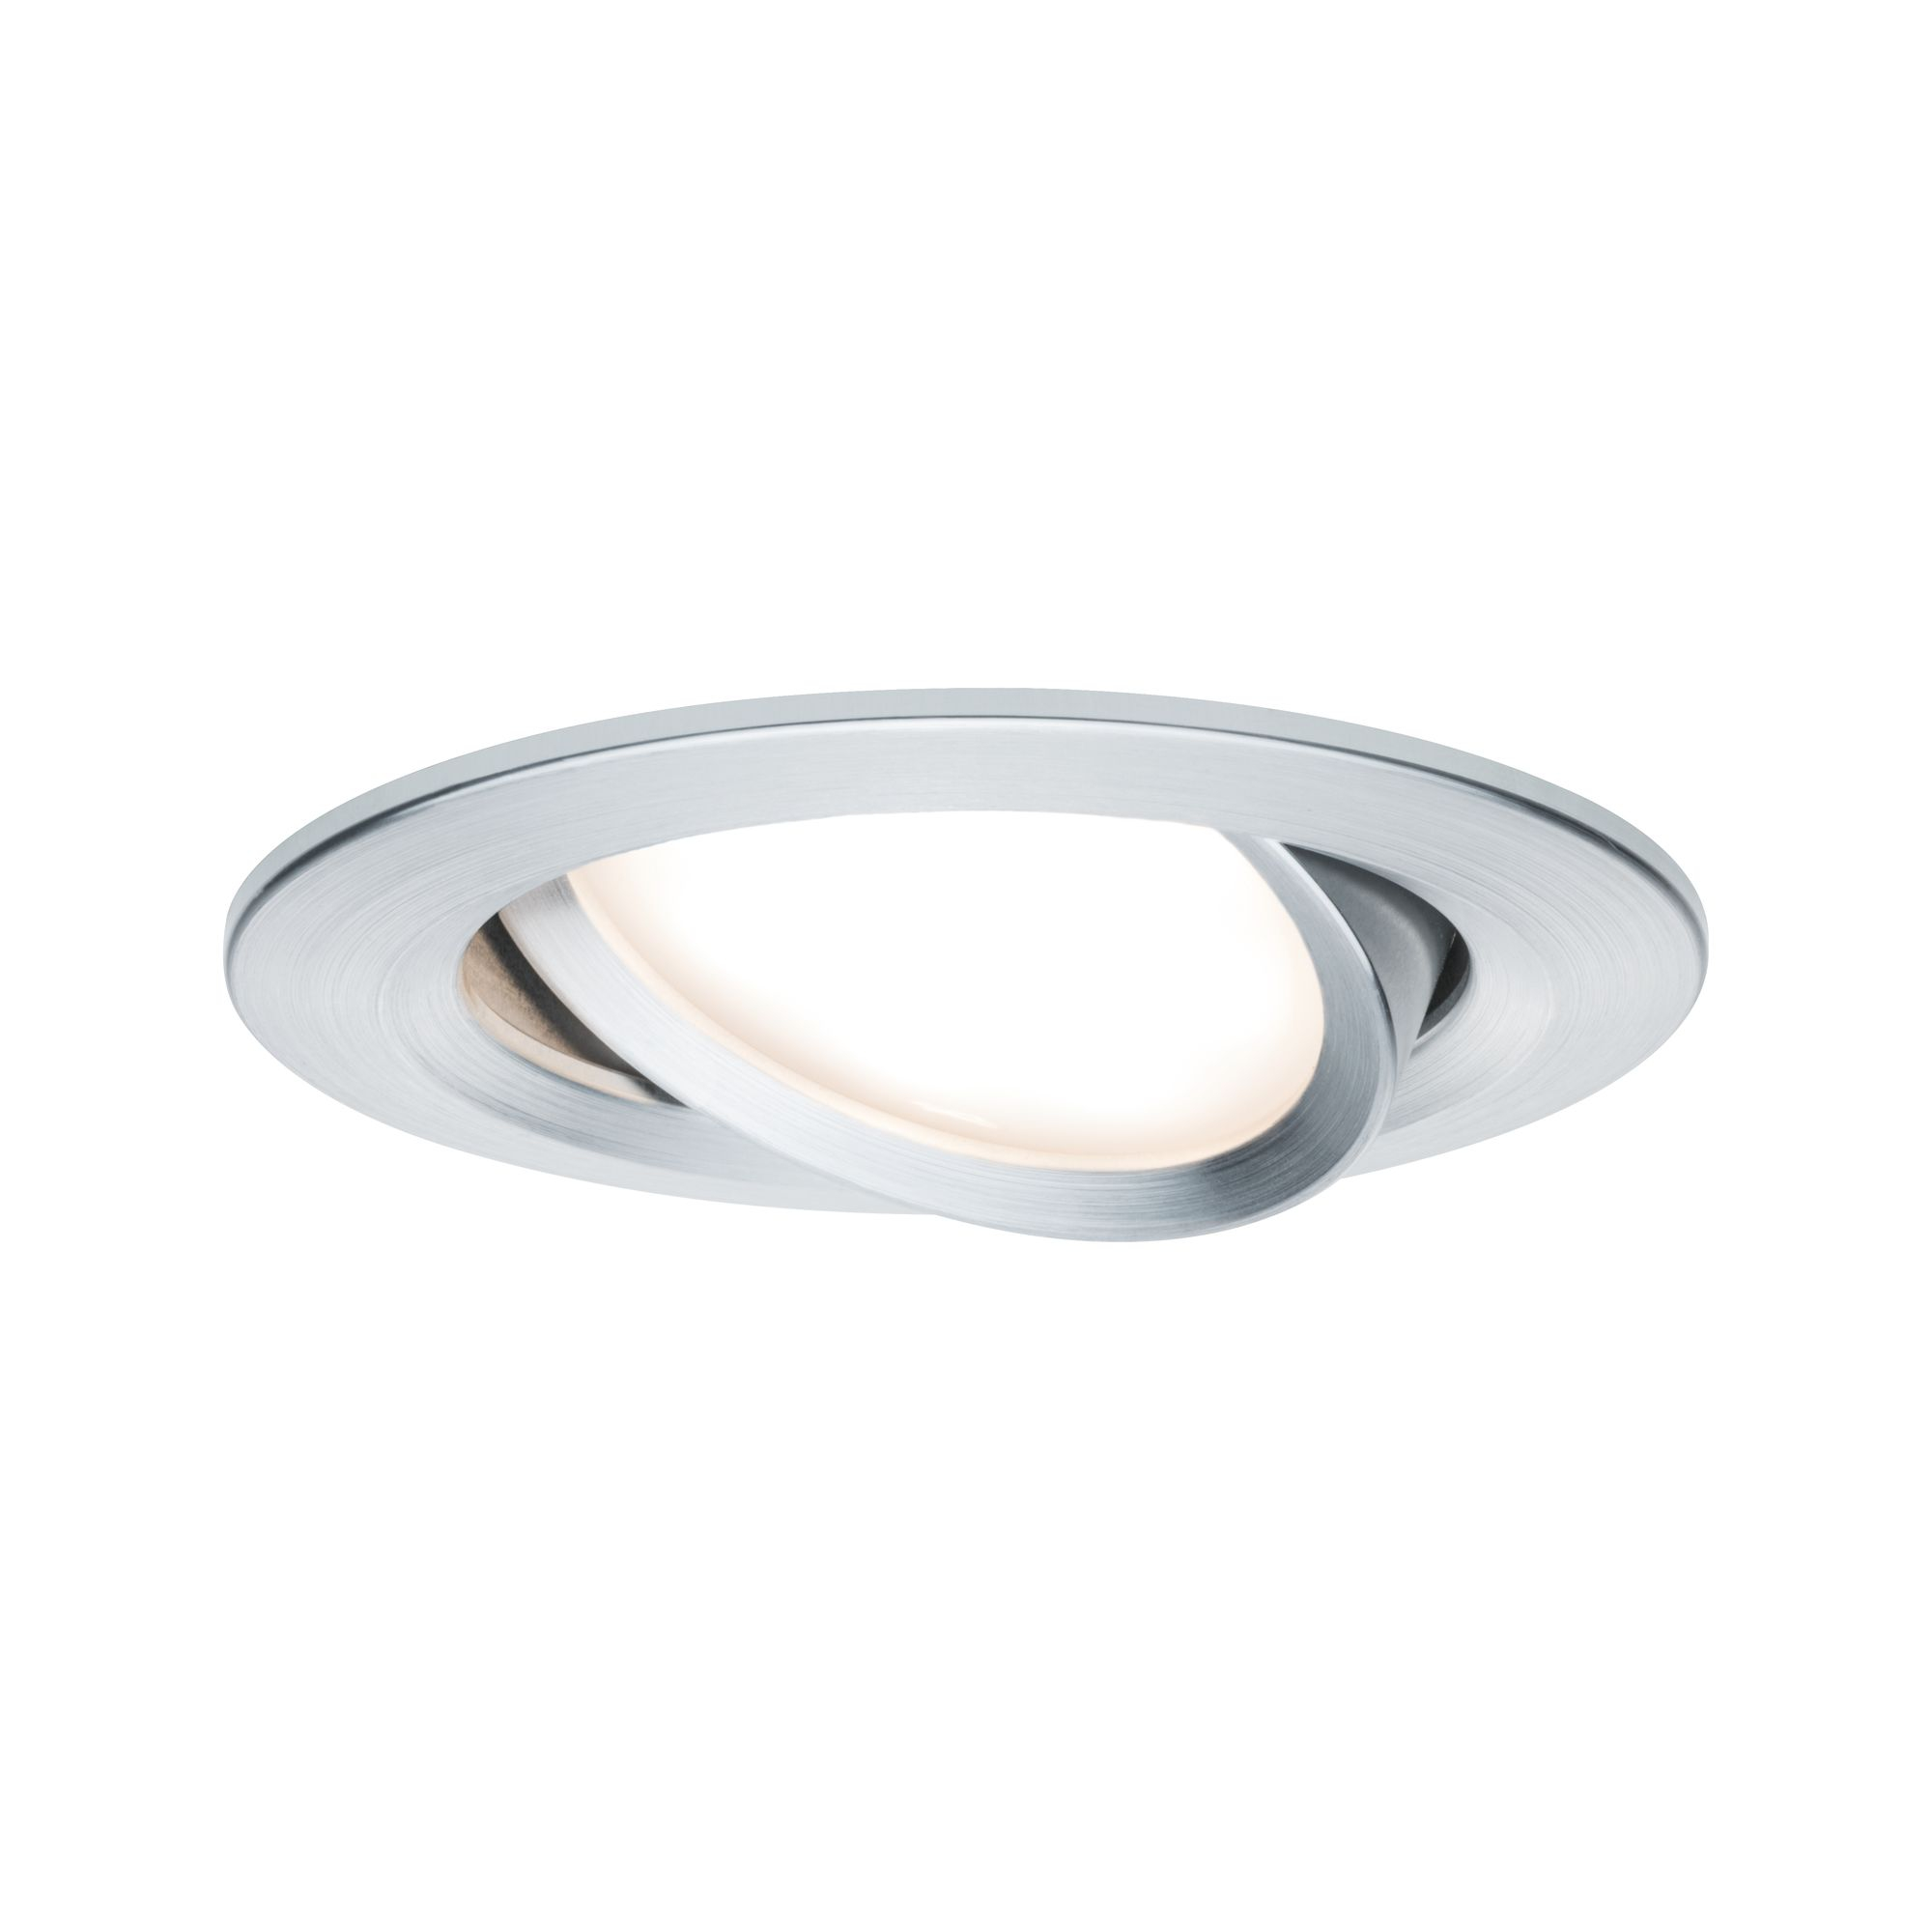 Inbouwlamp LED Coin Slim IP23 rond 6,8 W